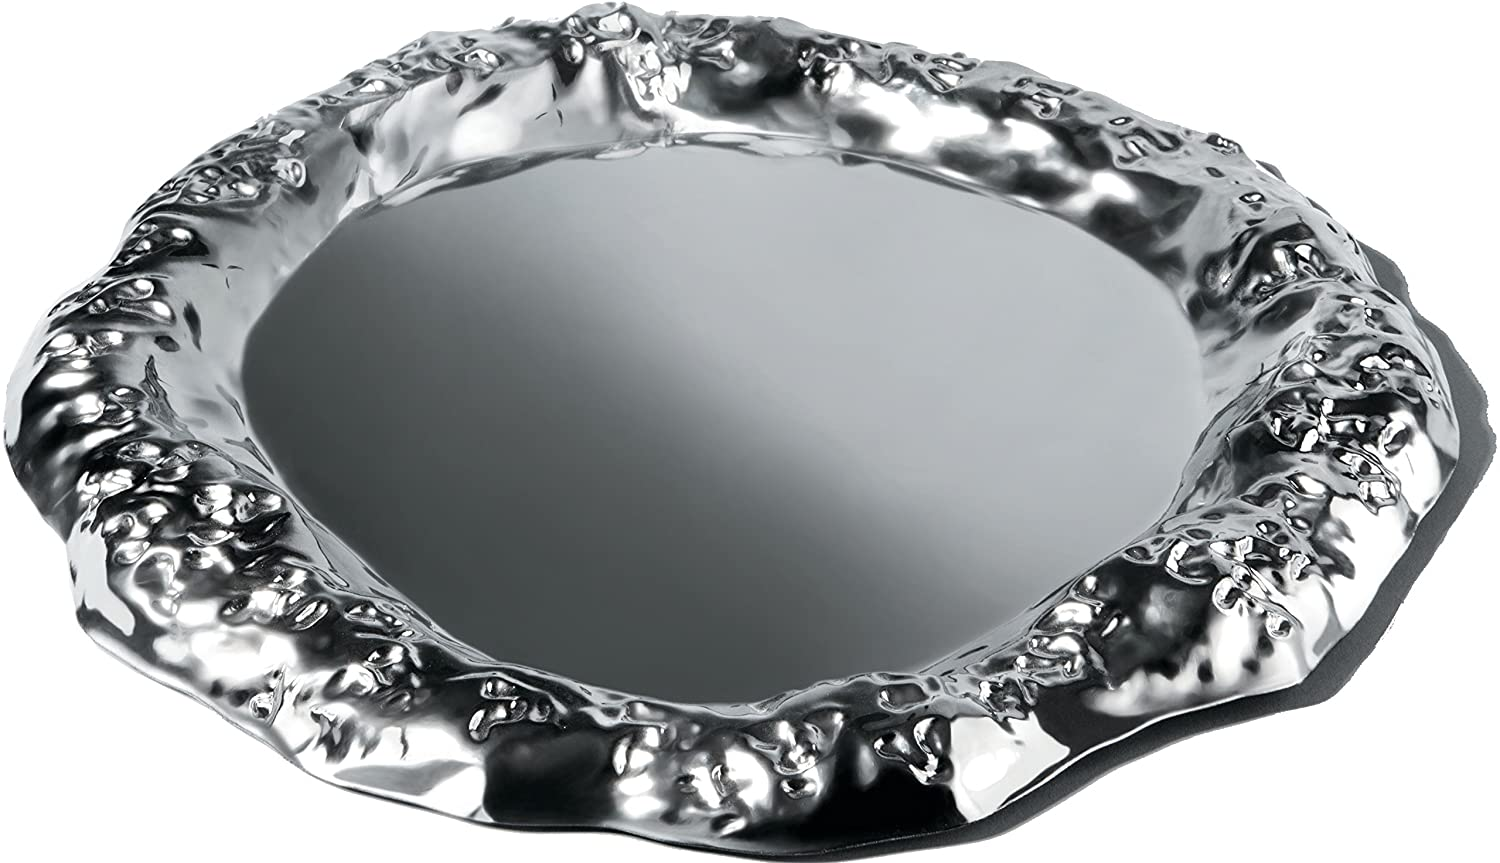 AlessiFingernails work Tray in 18//10 Stainless Steel Mirror Polished Silver SCH01